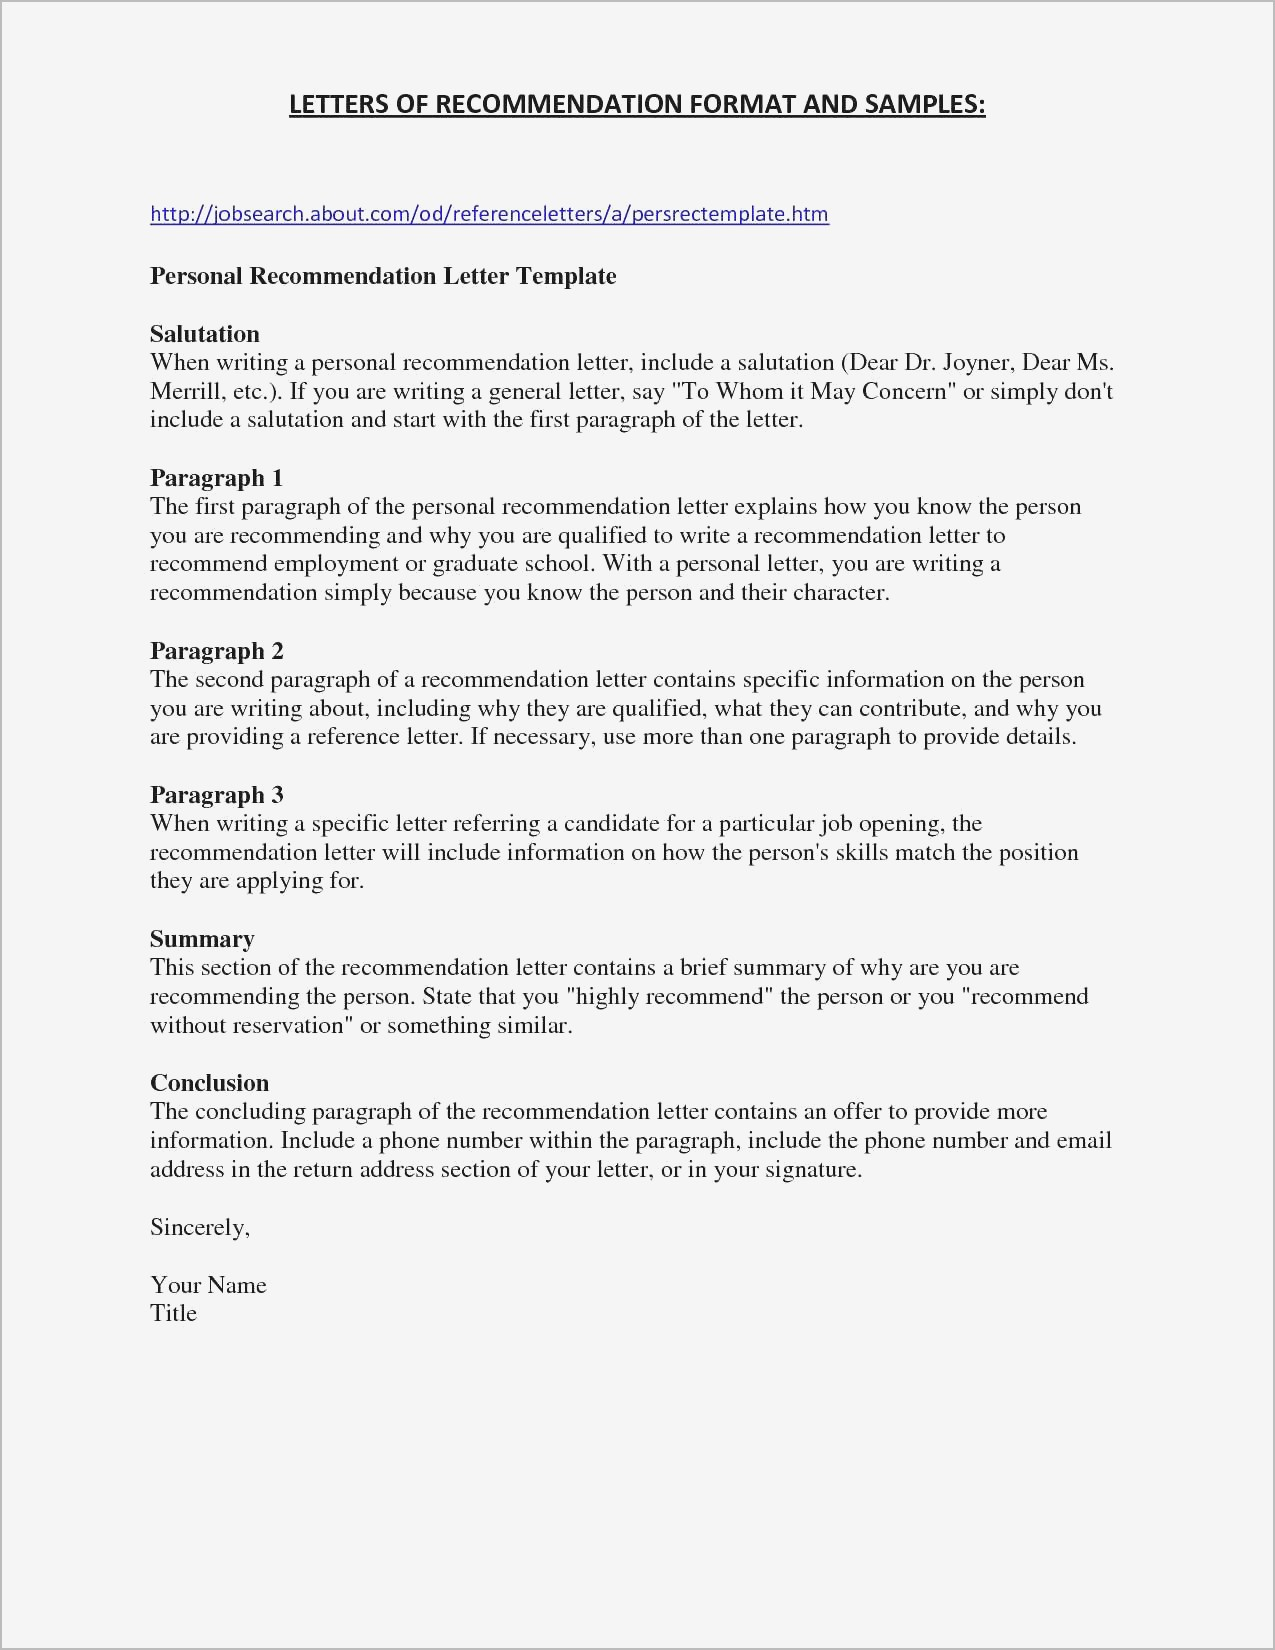 Free foreclosure Letter Template - Short Cover Letter Sample Pdf format